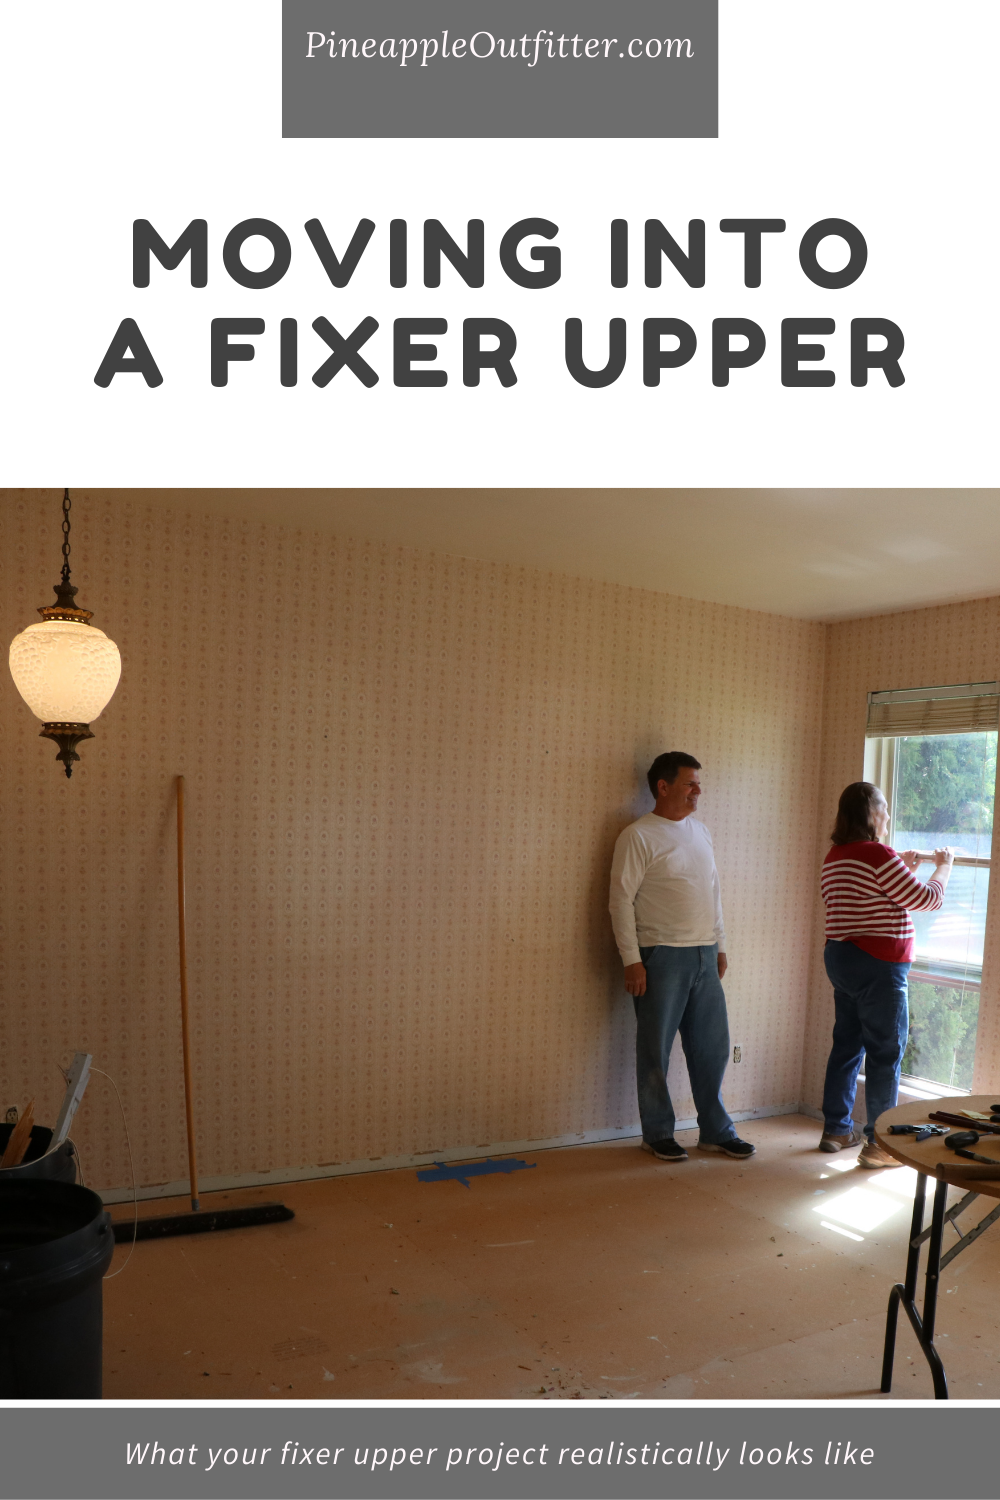 Moving Into a Fixer Upper